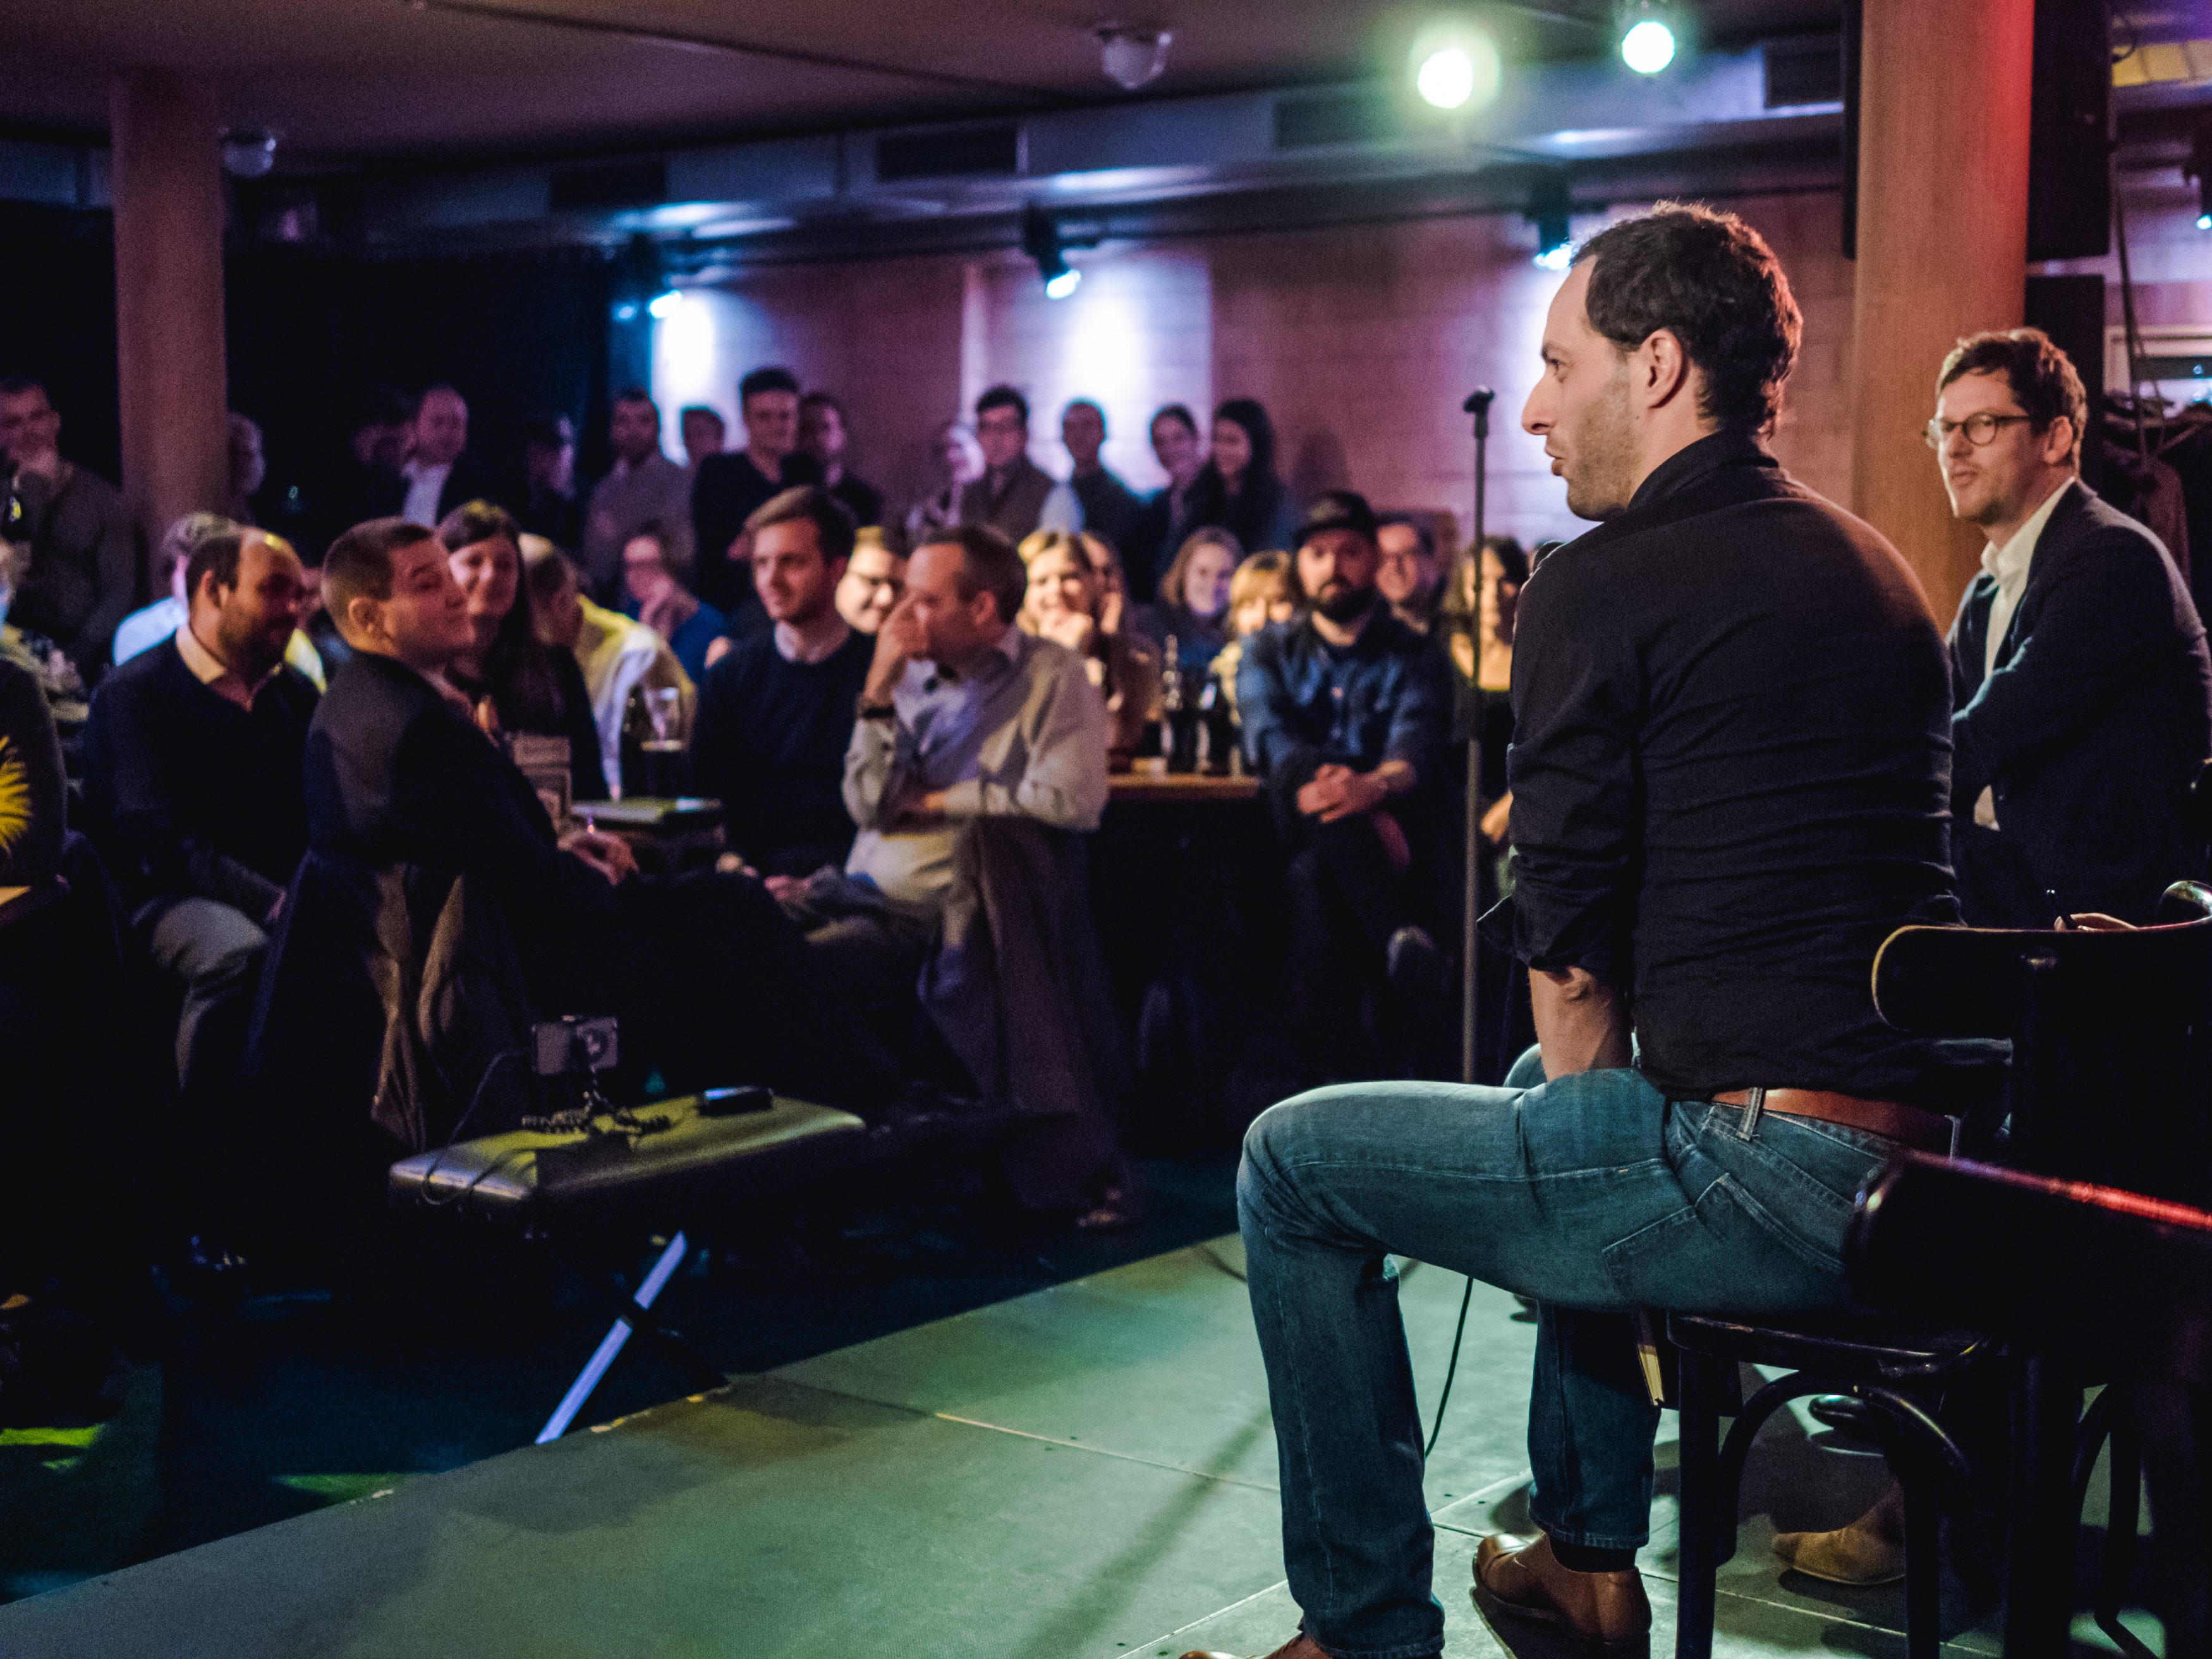 """Jon Worth speaks at a """"Brits, Brexit (and beer)"""" meeting in Berlin."""